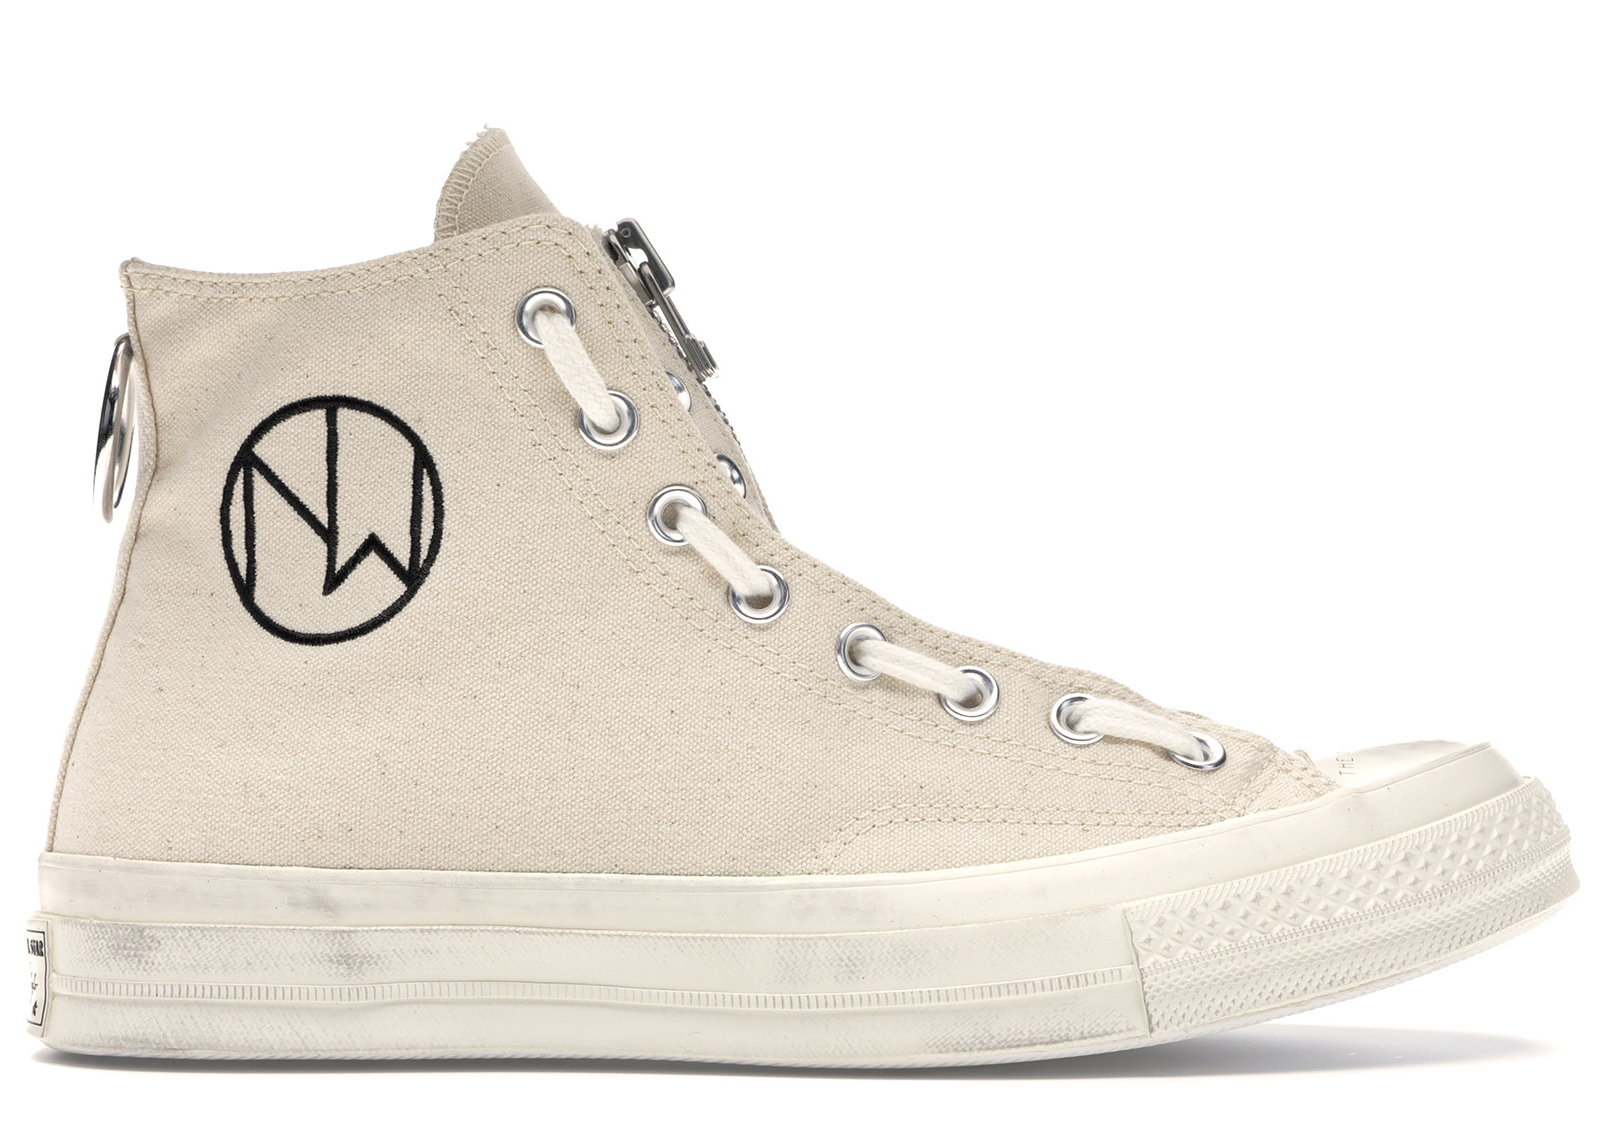 Converse Chuck Taylor All Star 70s Hi Undercover New Warriors White